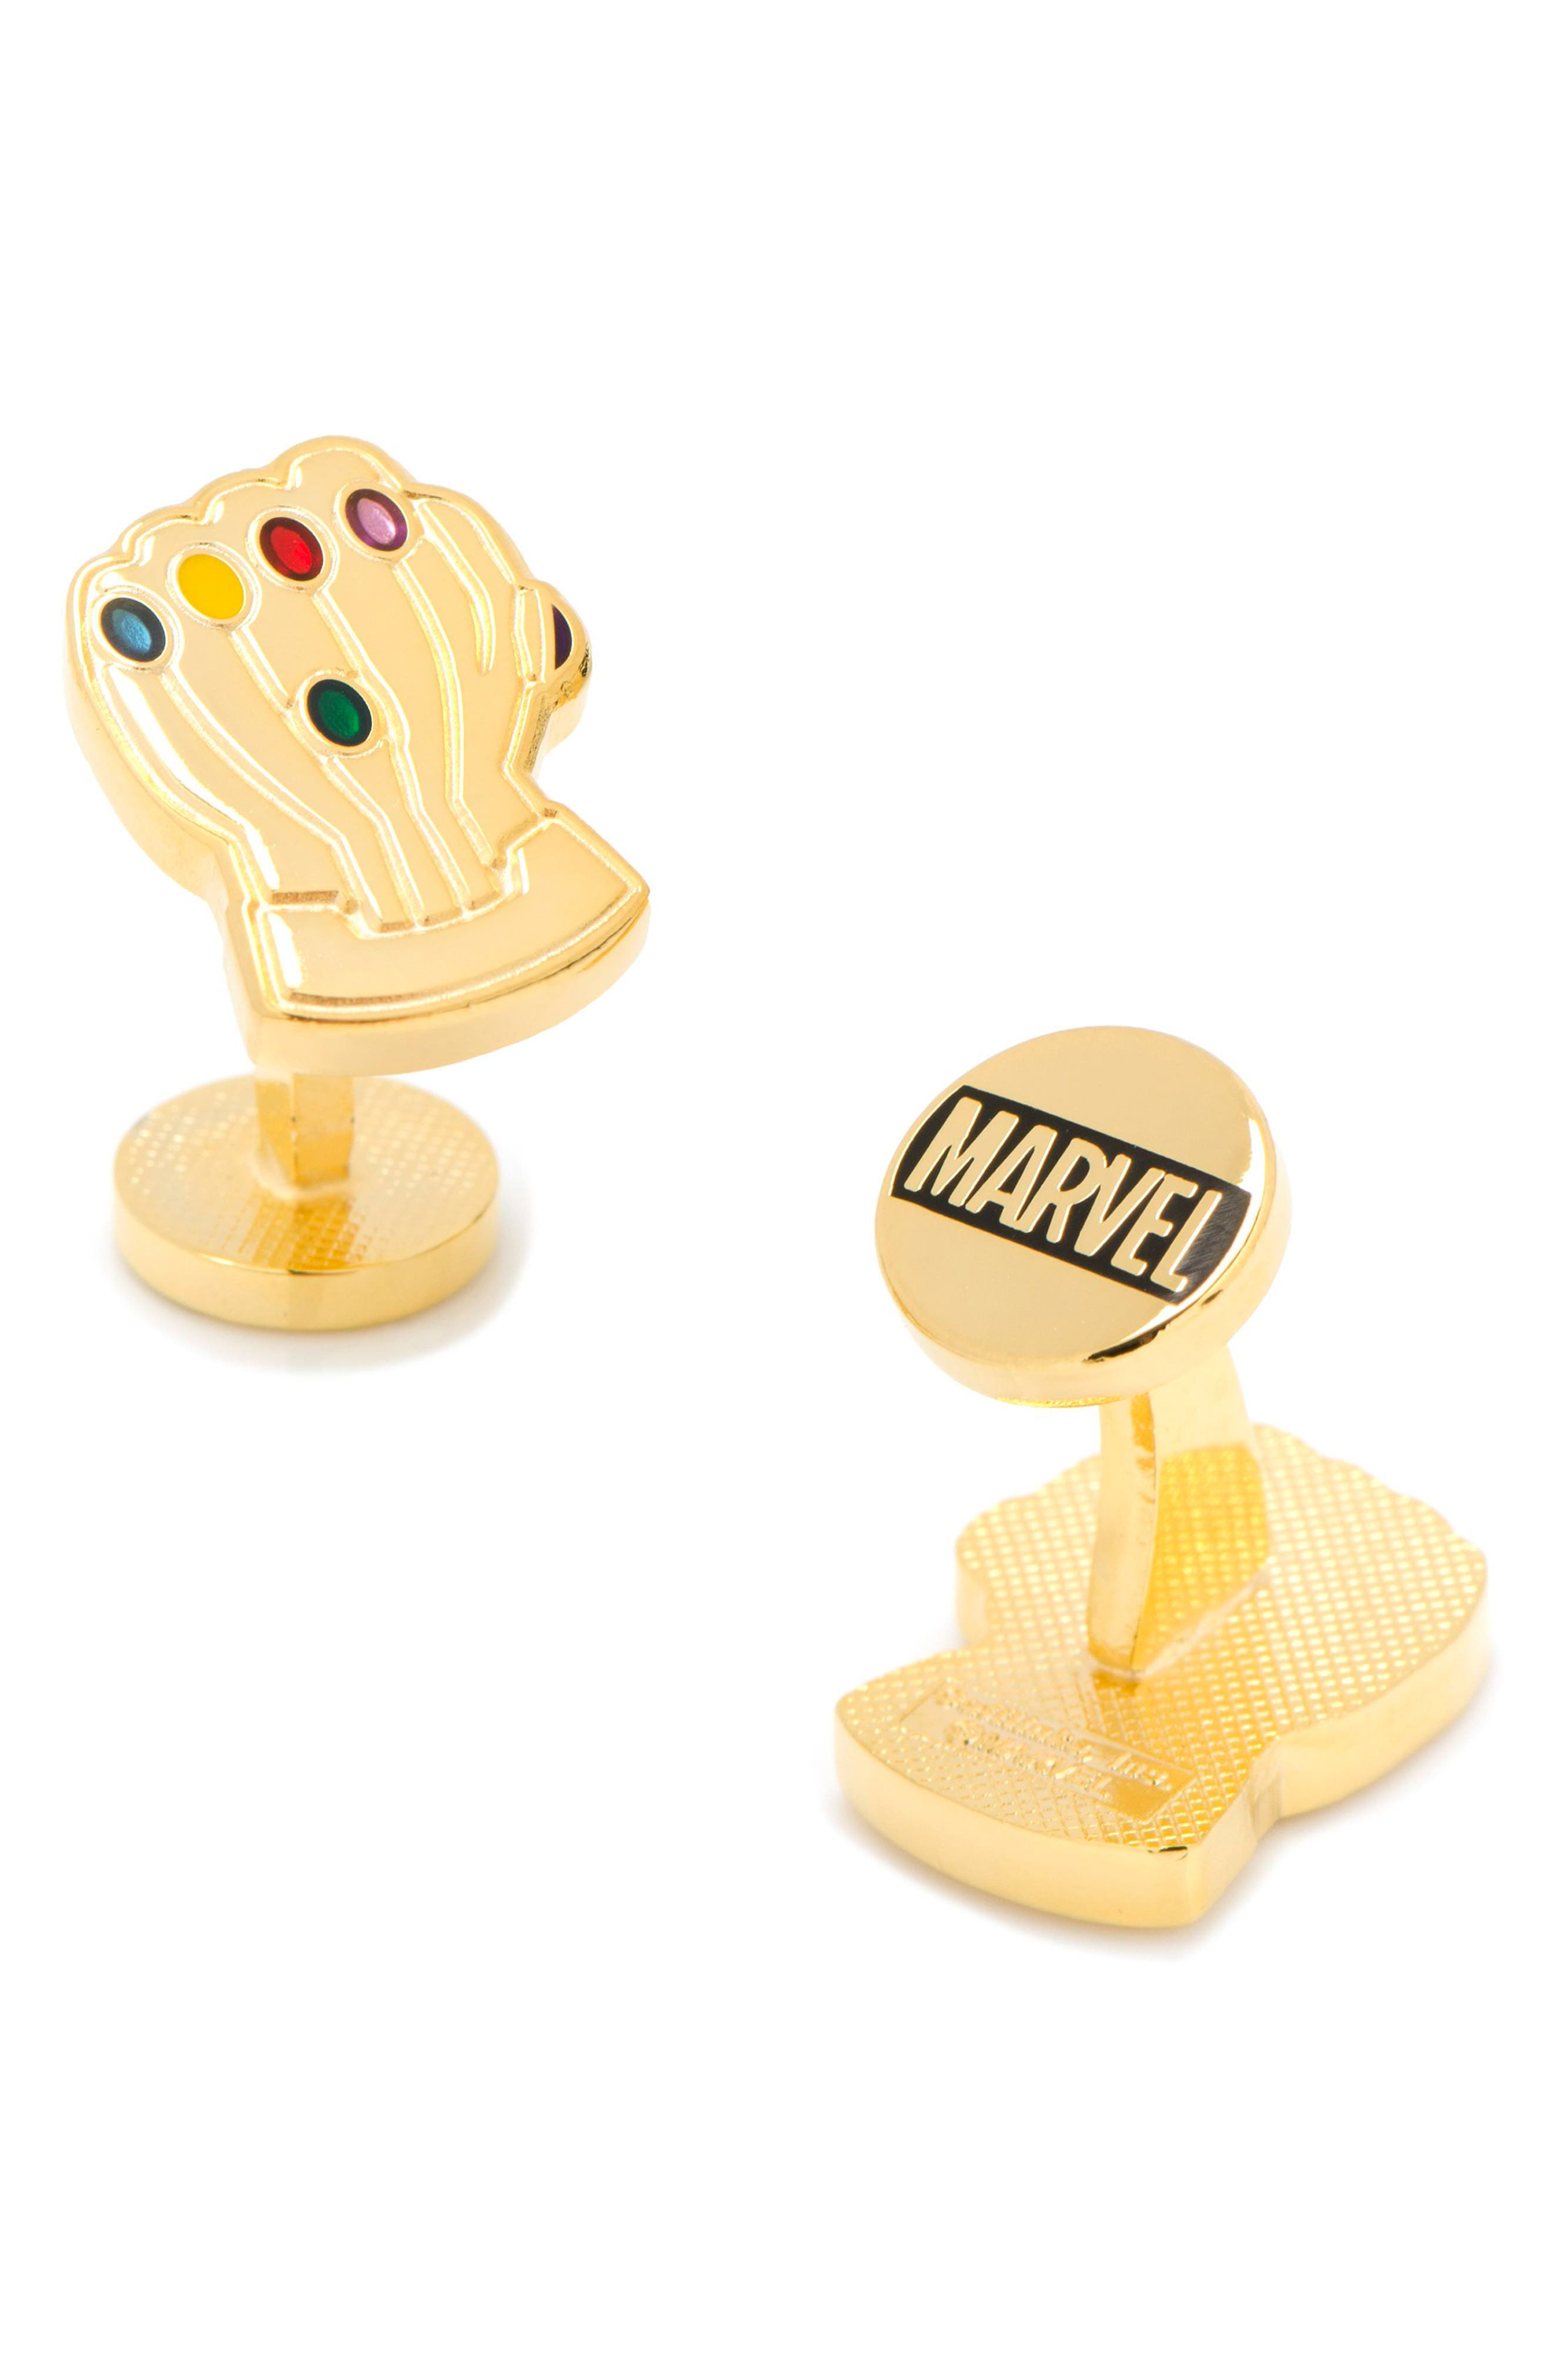 Thanos Infinity Gauntlet Cuff Links,                             Alternate thumbnail 2, color,                             GOLD